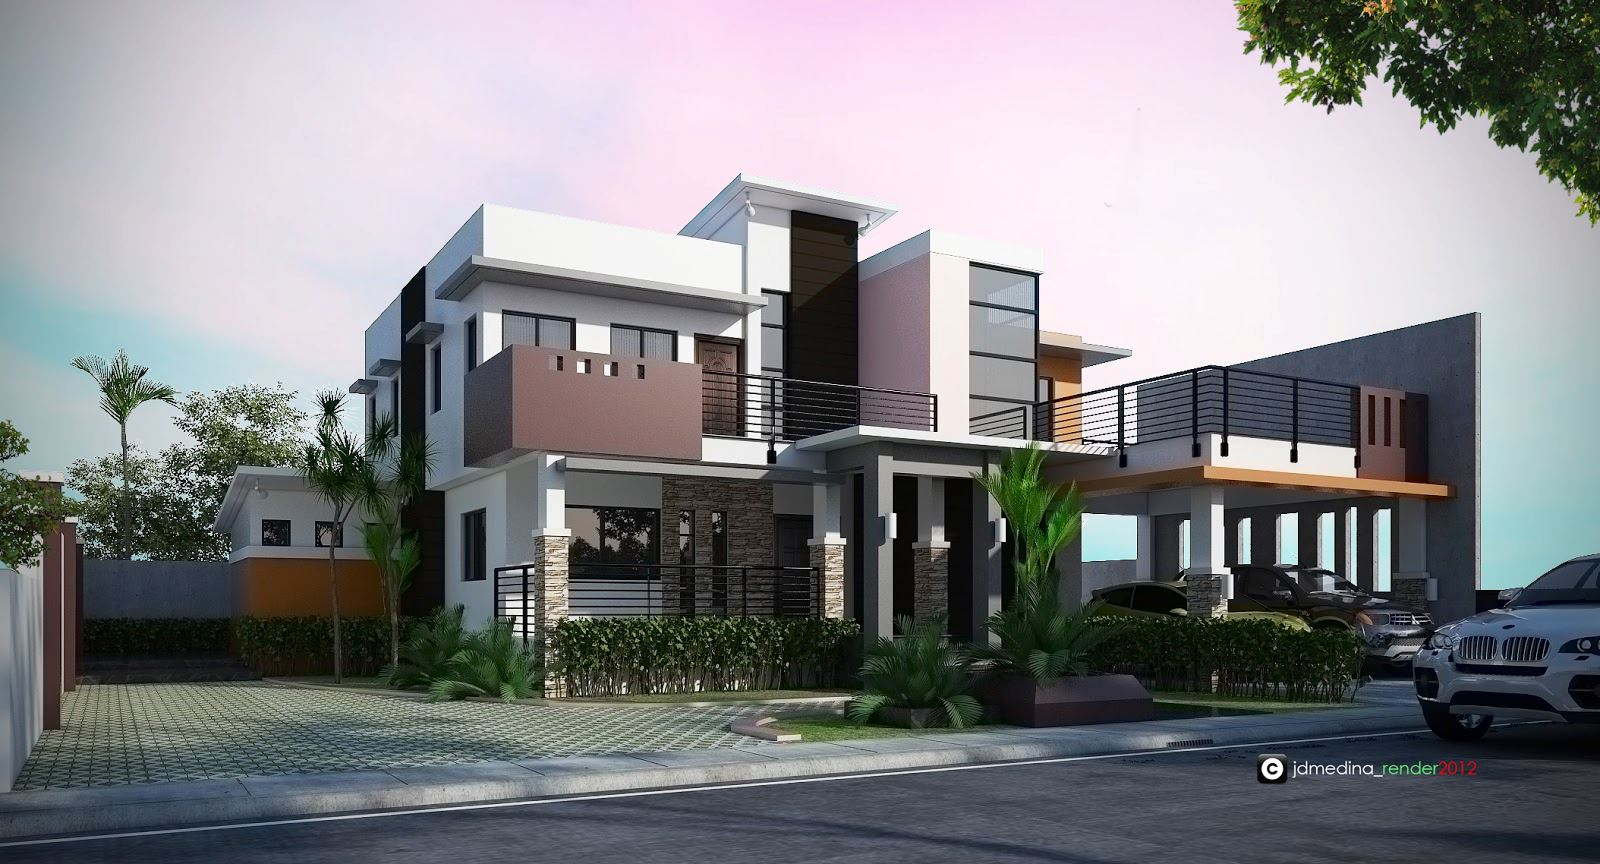 Sketchup texture vray for sketchup visopt download 1 - Exterior rendering in 3ds max with vray ...